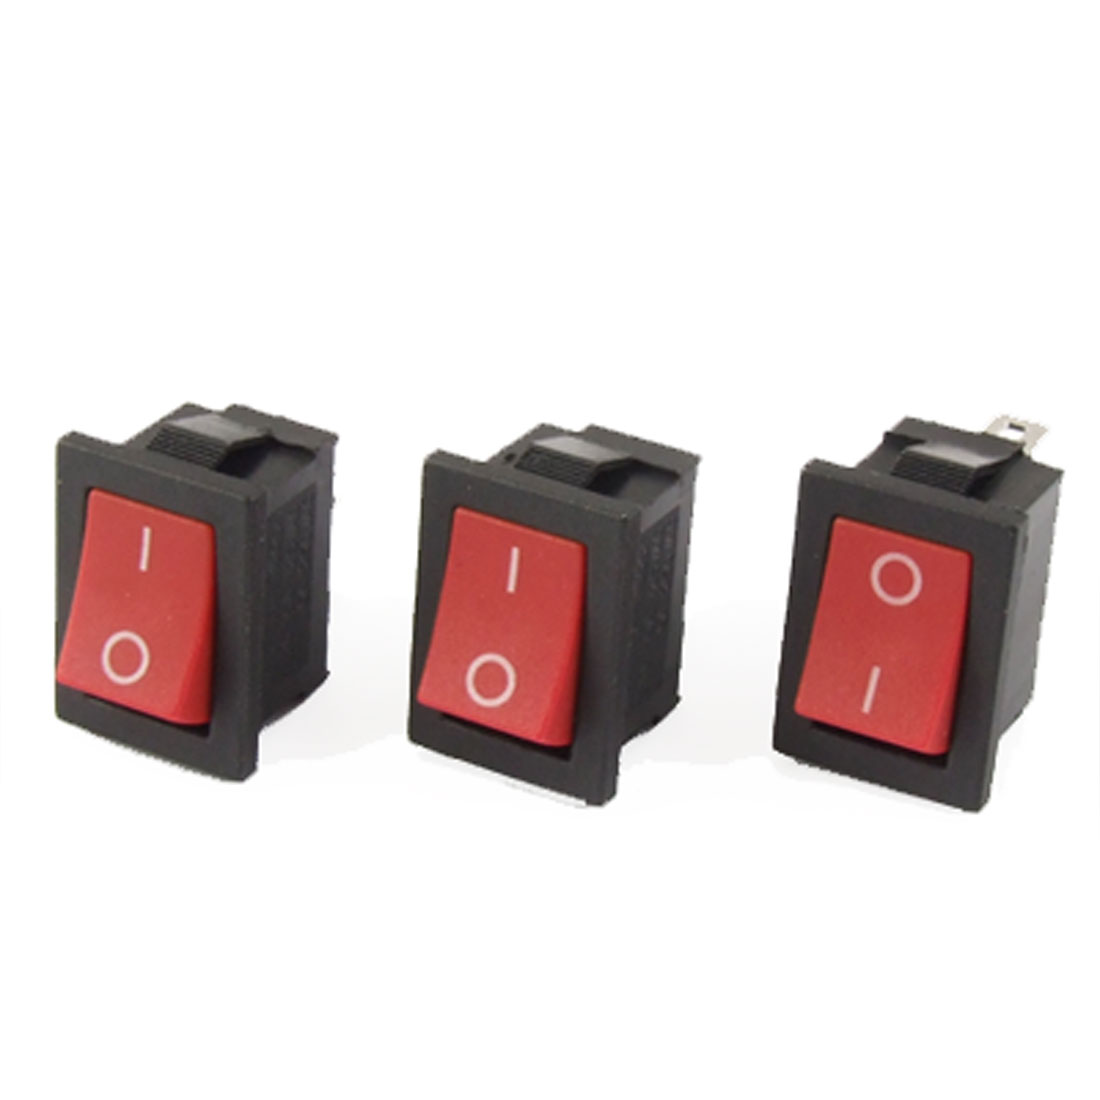 3pcs AC 6A/250V 10A/125V ON/OFF SPST 2 Pole Snap-in Boat Rocker Switch Red Button